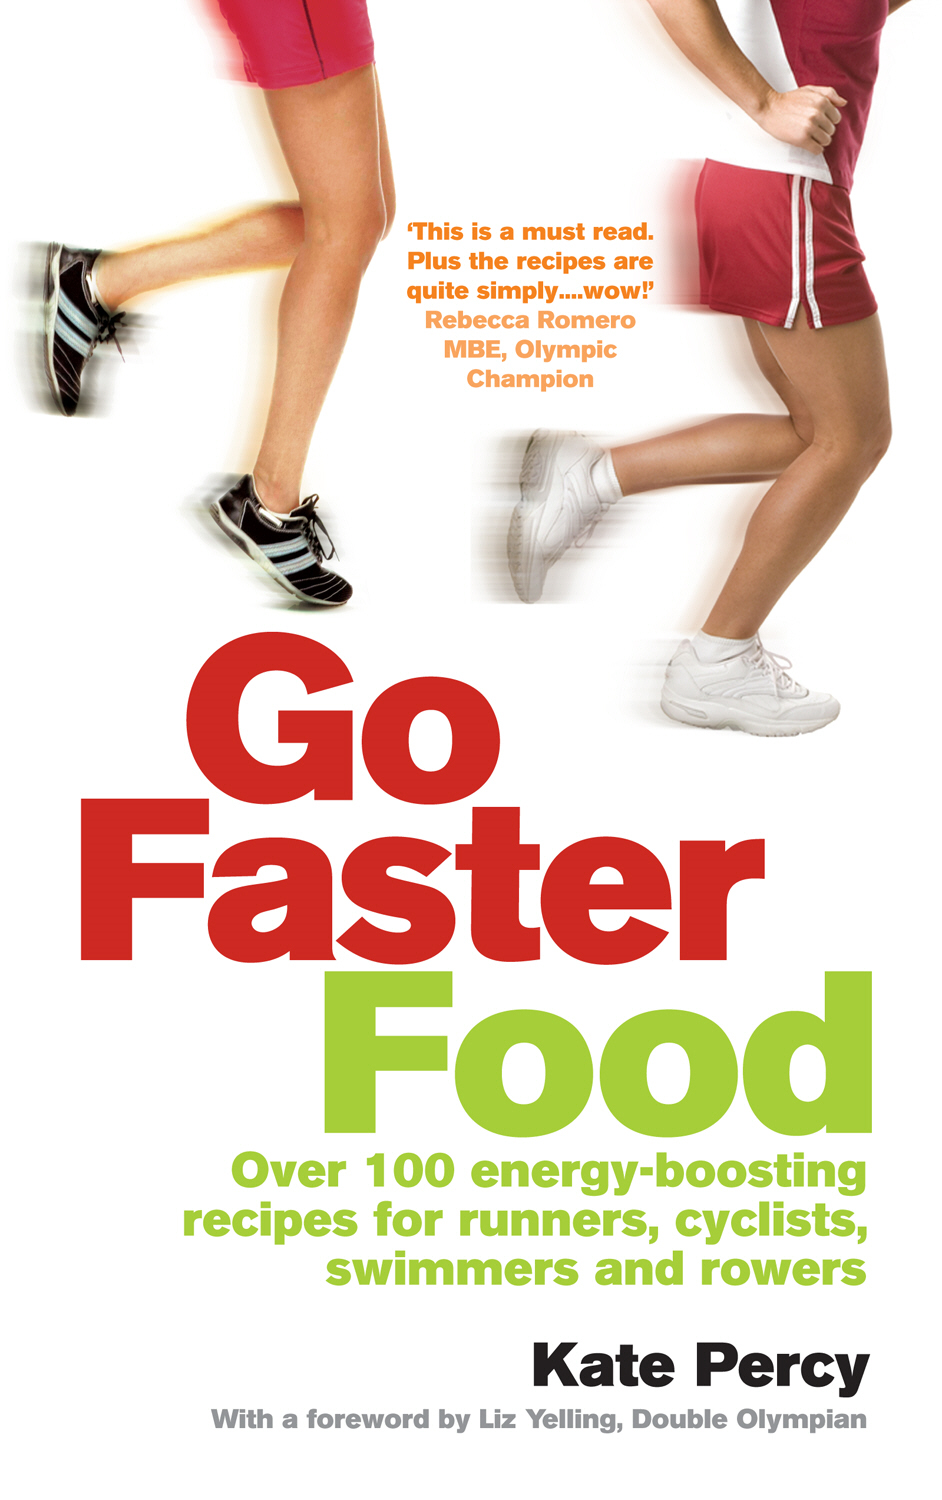 Go Faster Food Over 100 energy-boosting recipes for runners,  cyclists,  swimmers and rowers